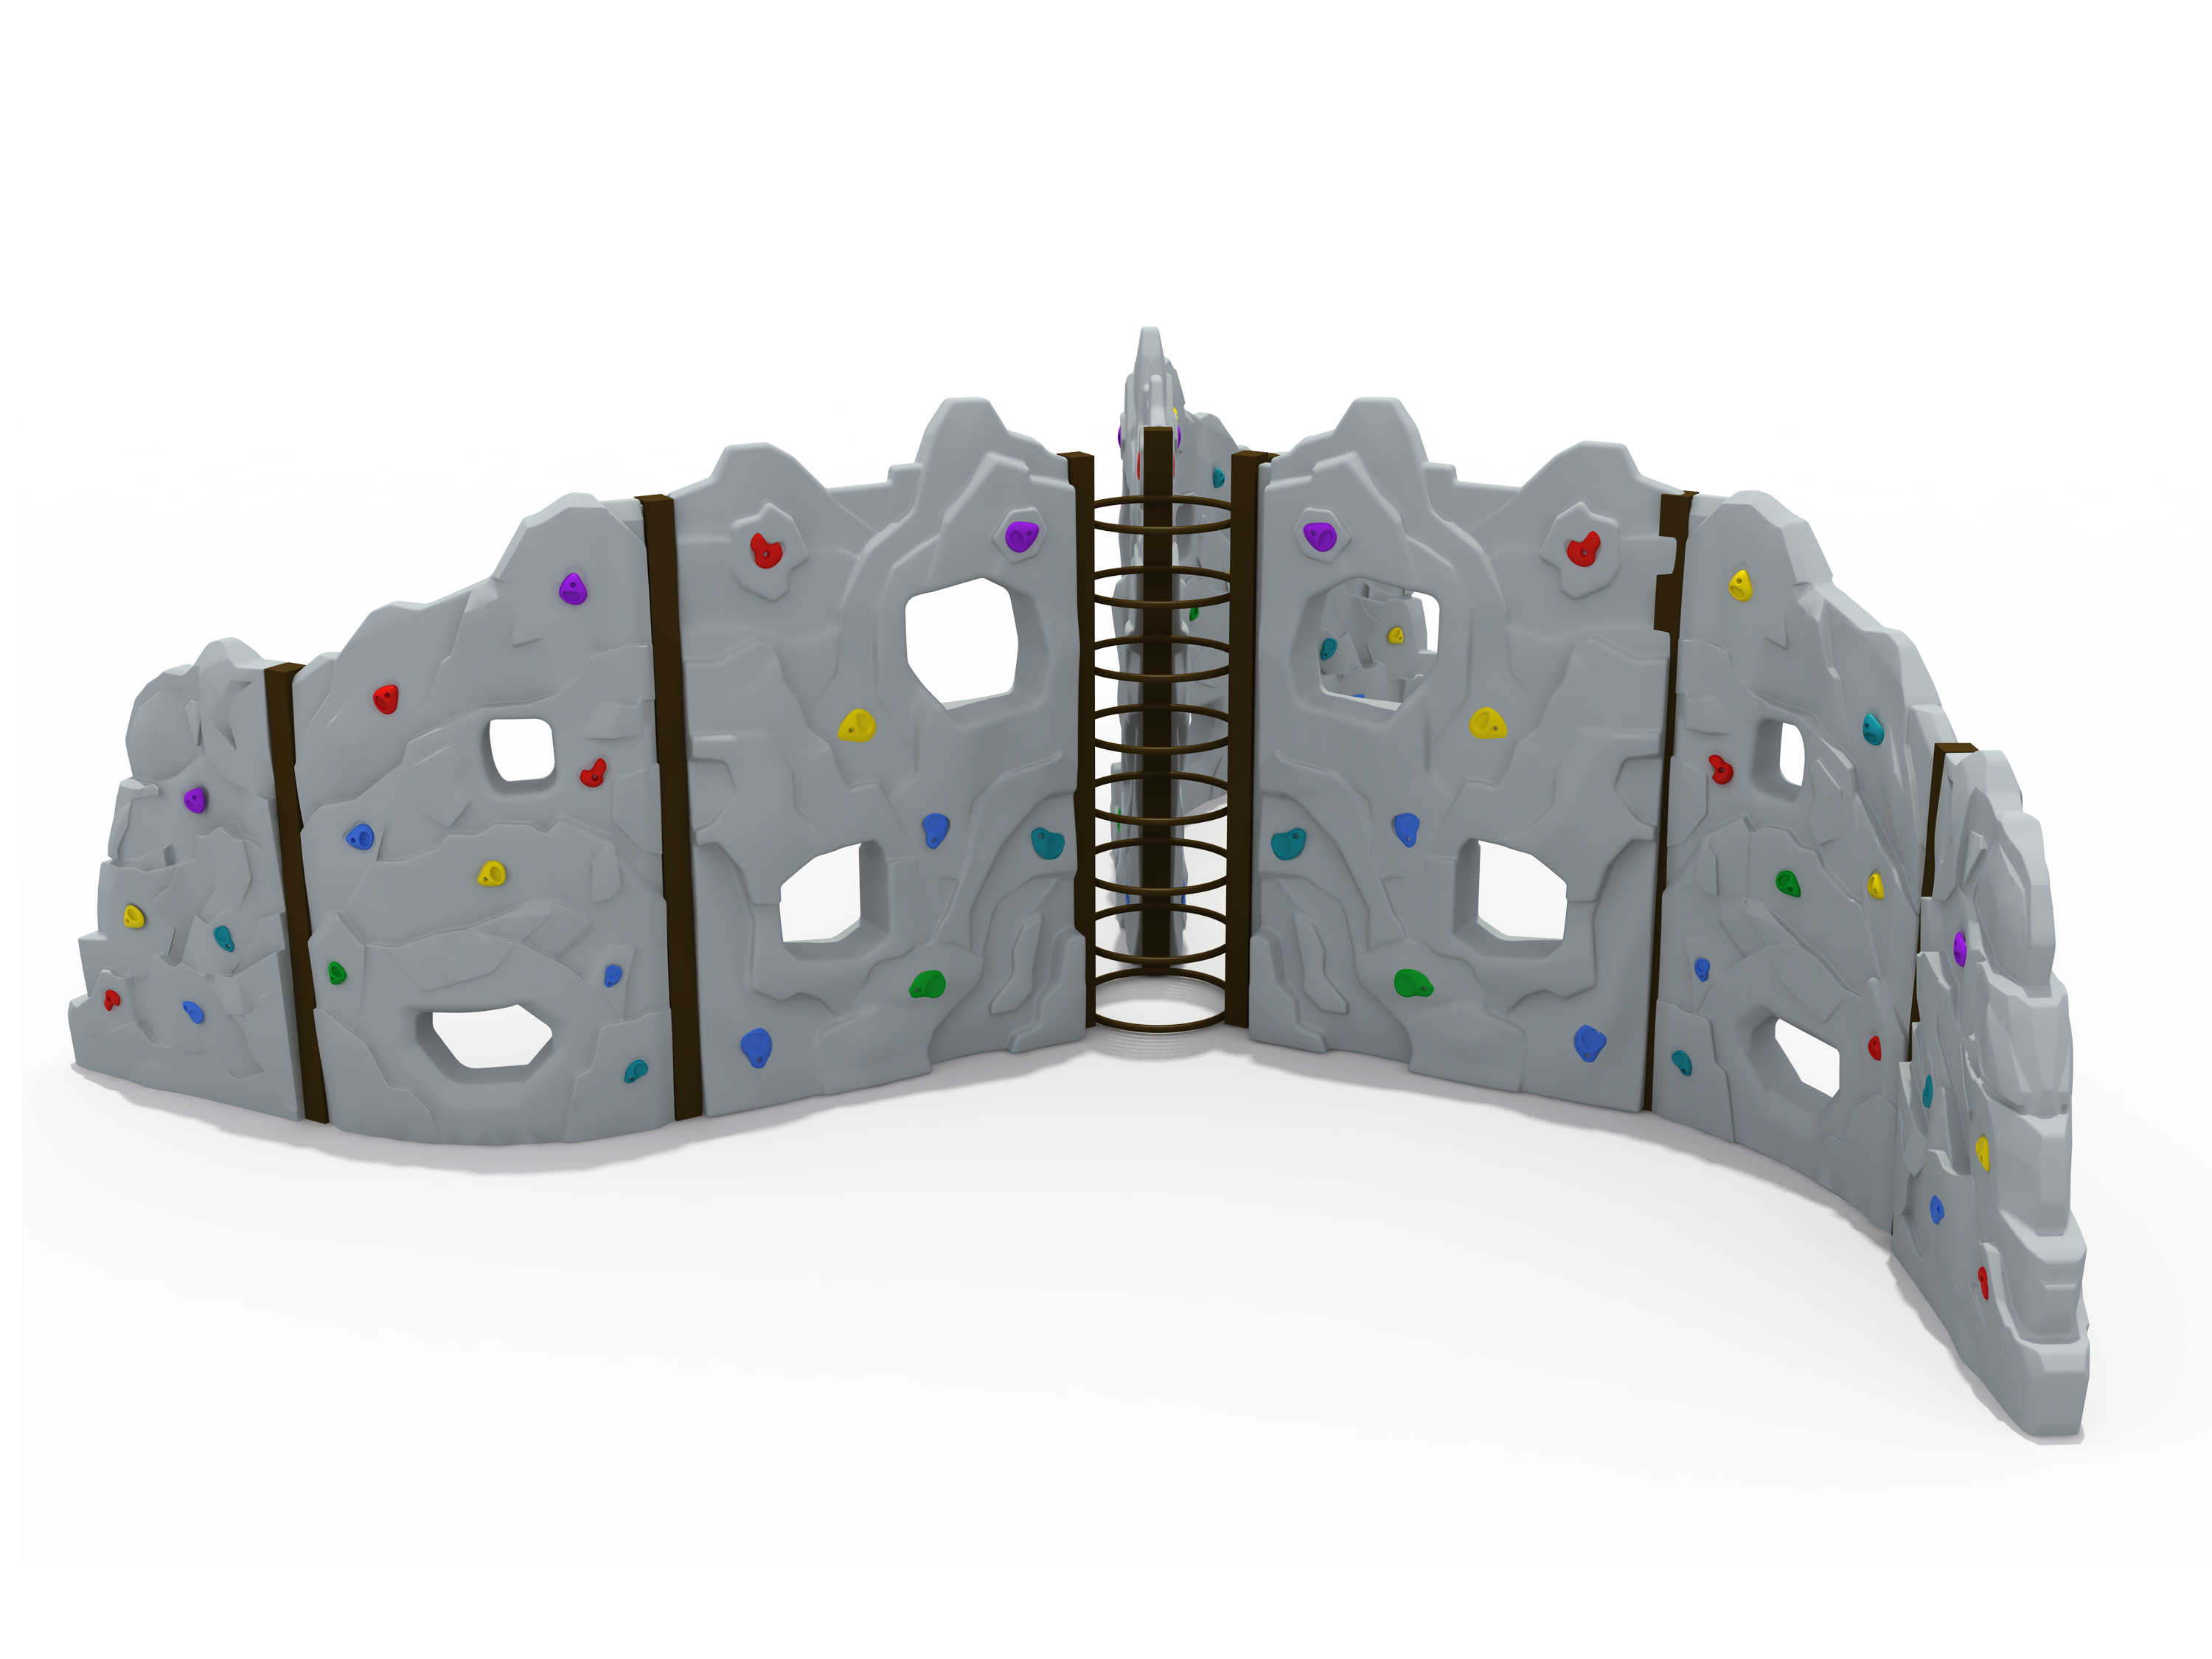 Cheap used rock climbing wall holds games for kids